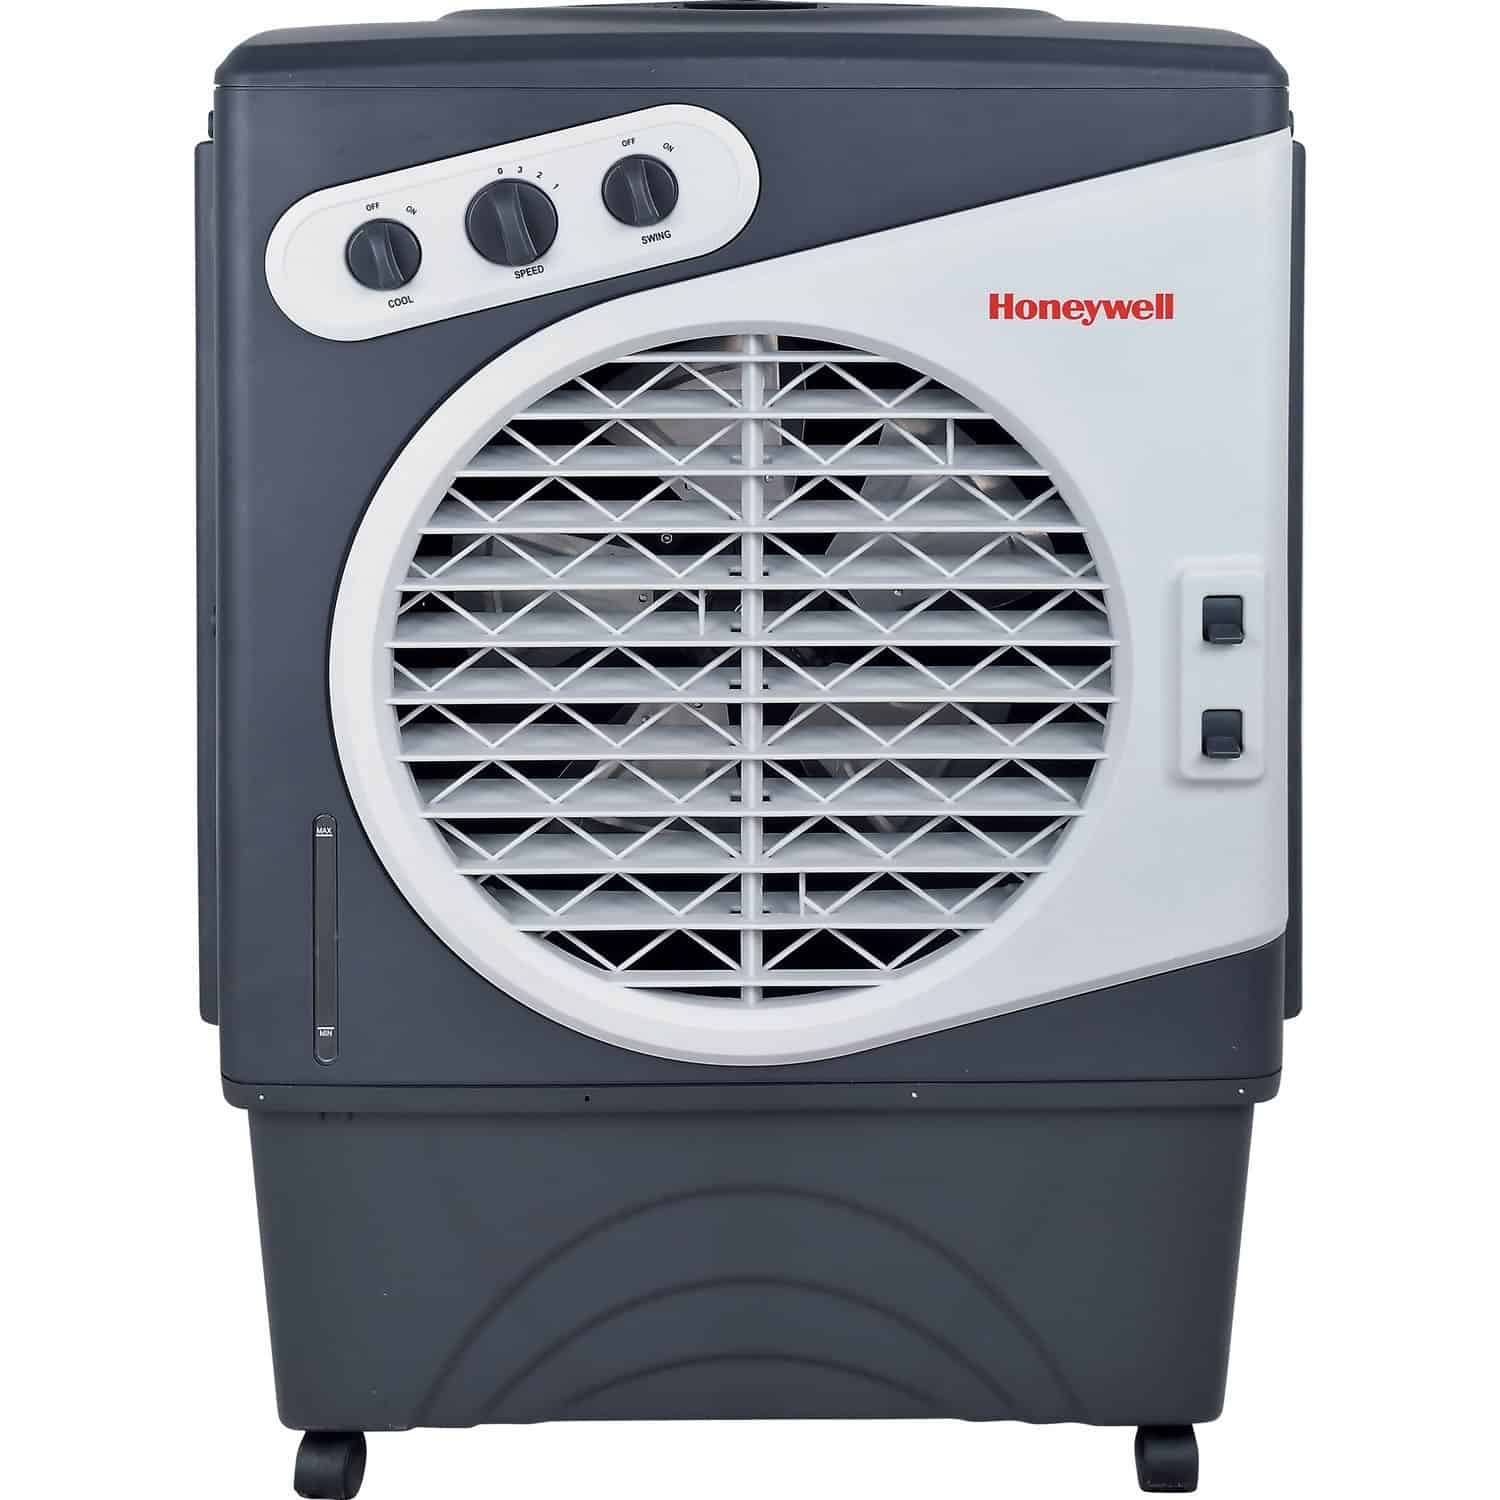 Outdoor portable evaporative airconditioner with long-lasting honeywell comb pads and copper continuous water supply connection.